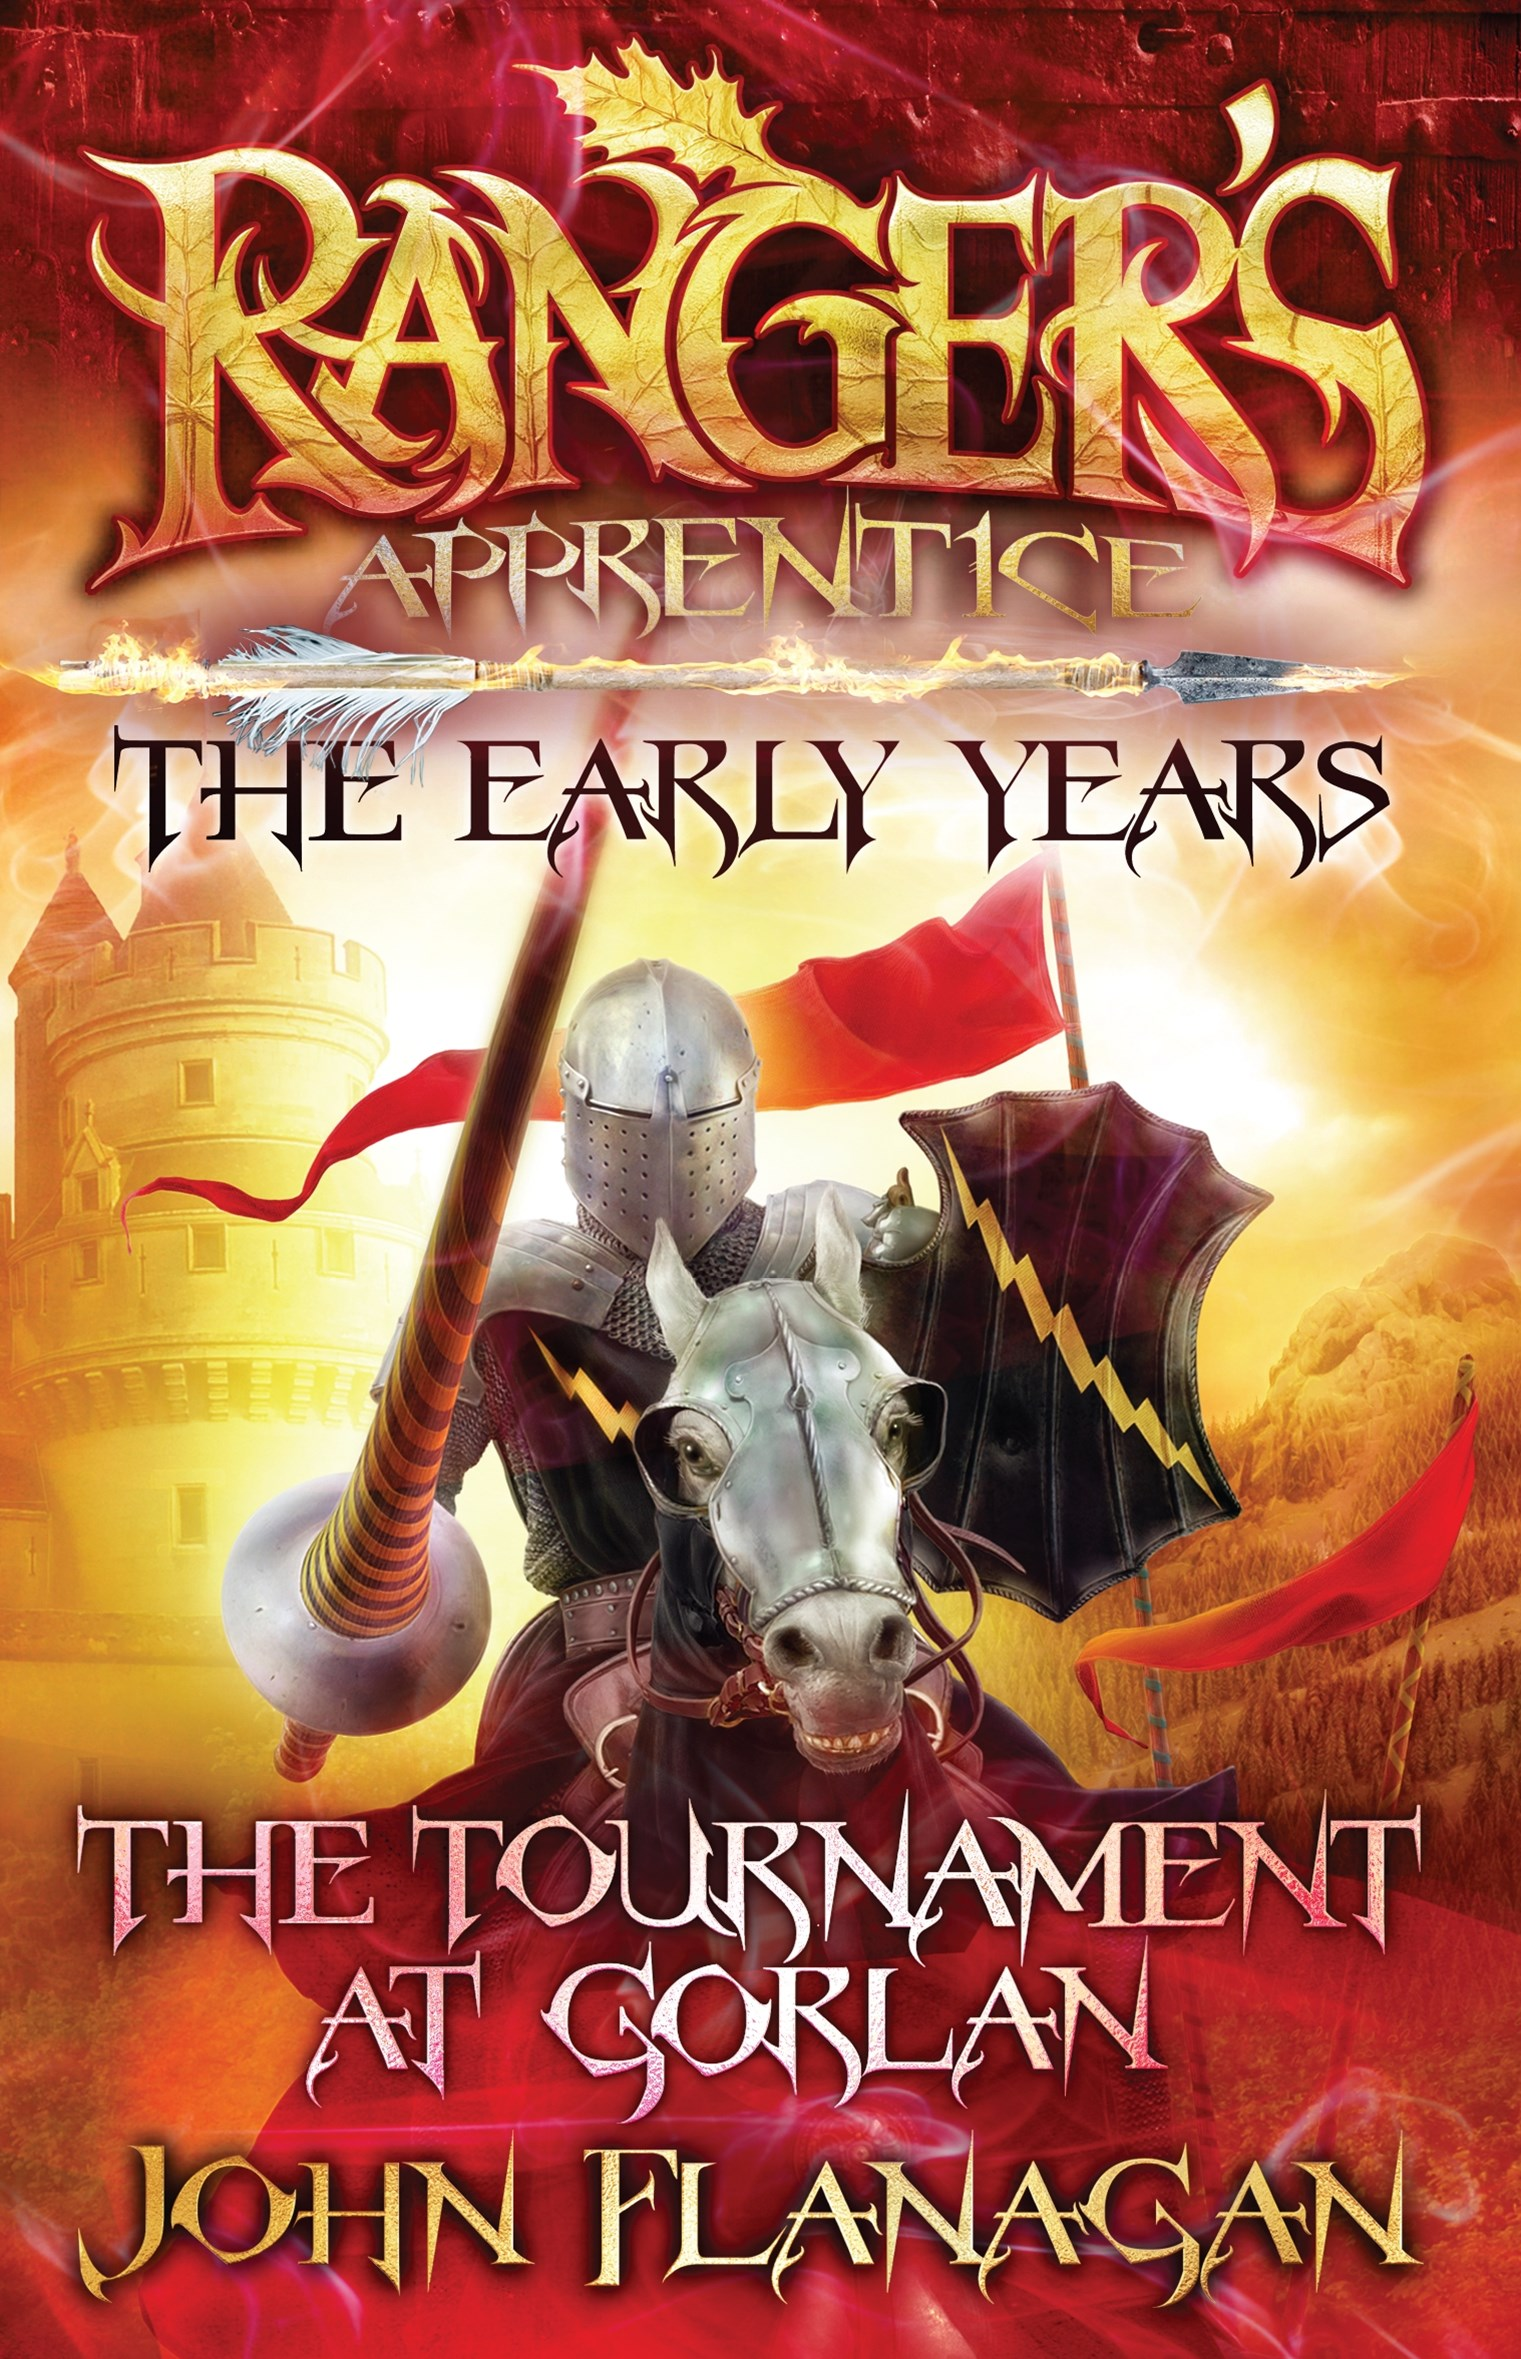 The Tournament at Gorlan (Ranger's Apprentice The Early Years Book 1)